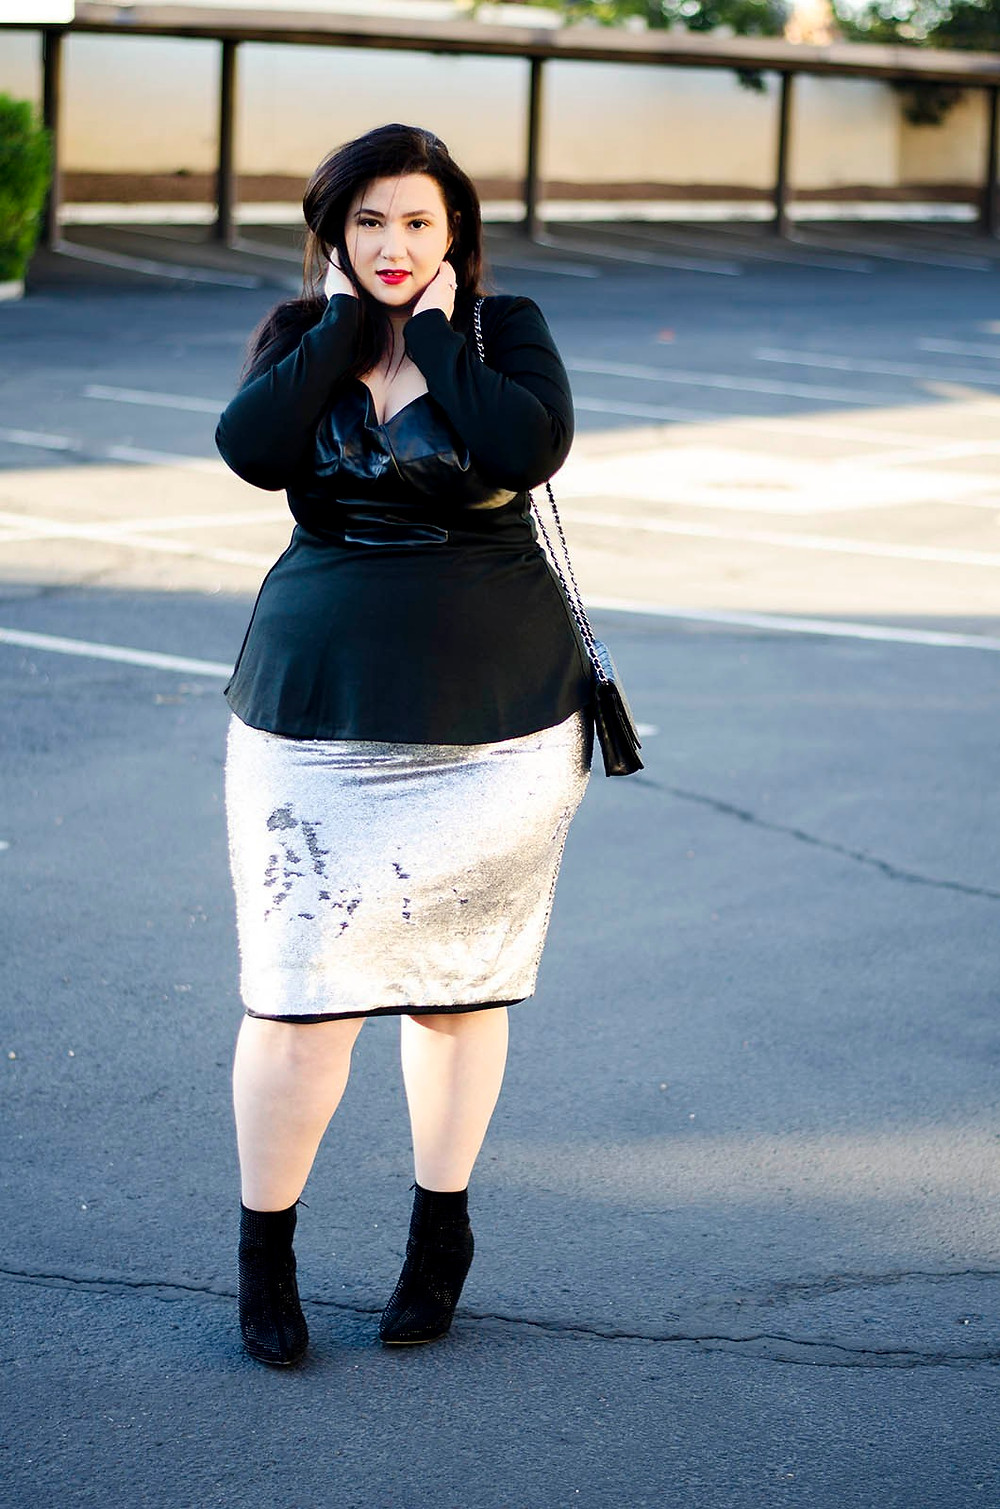 plus size ootd eloquii sequins sleek chic edgy minimalist fashion flattering pencil skirt crystal coons sometimesglam